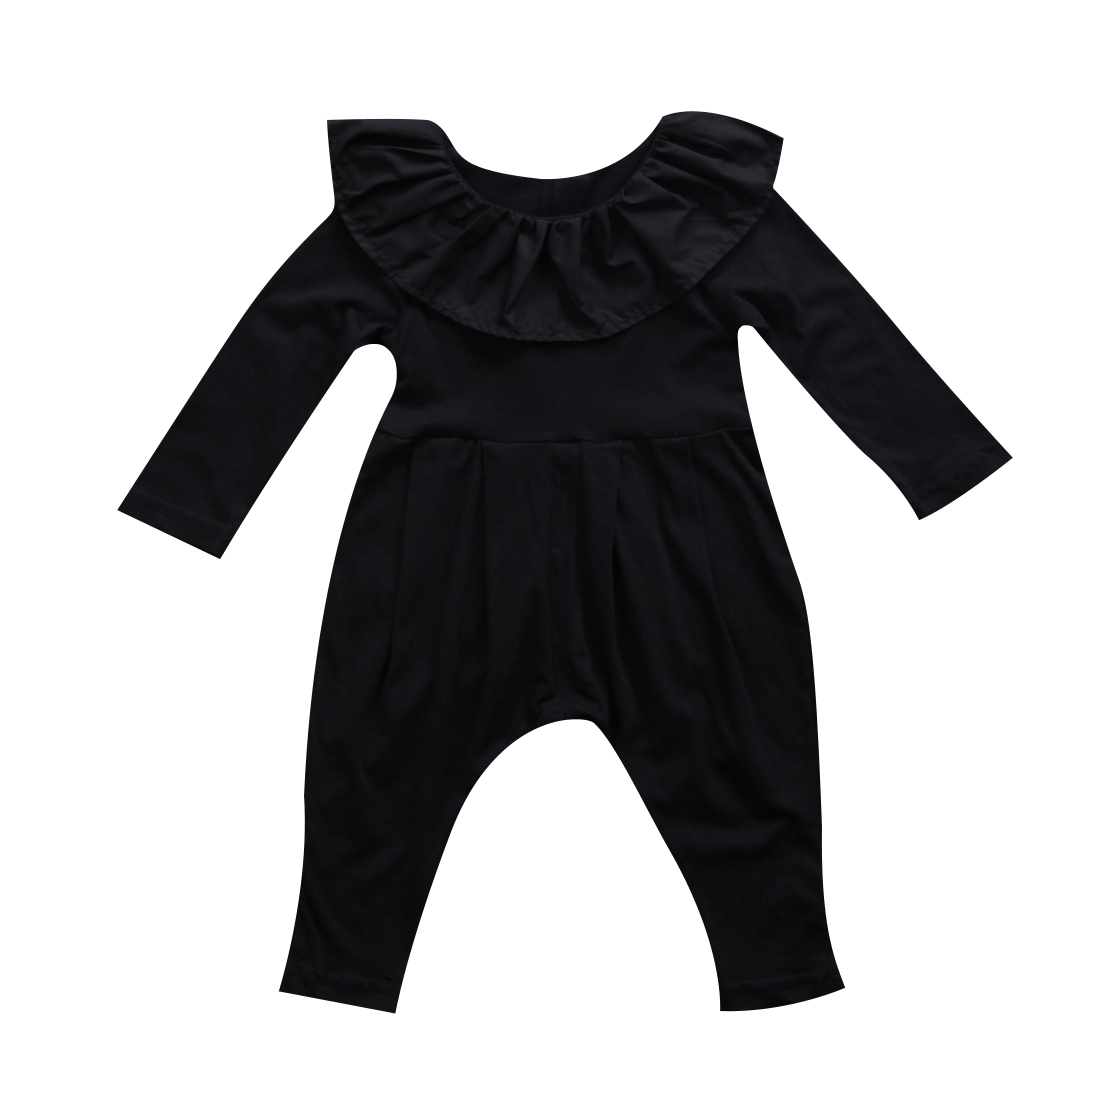 Cute Baby Girl Clothes Newborn Infant Baby Girl Black Ruffle Collar Long Sleeve Romper Clothes Outfits Baby Autumn Spring Romper belted flounce satin ruffle romper